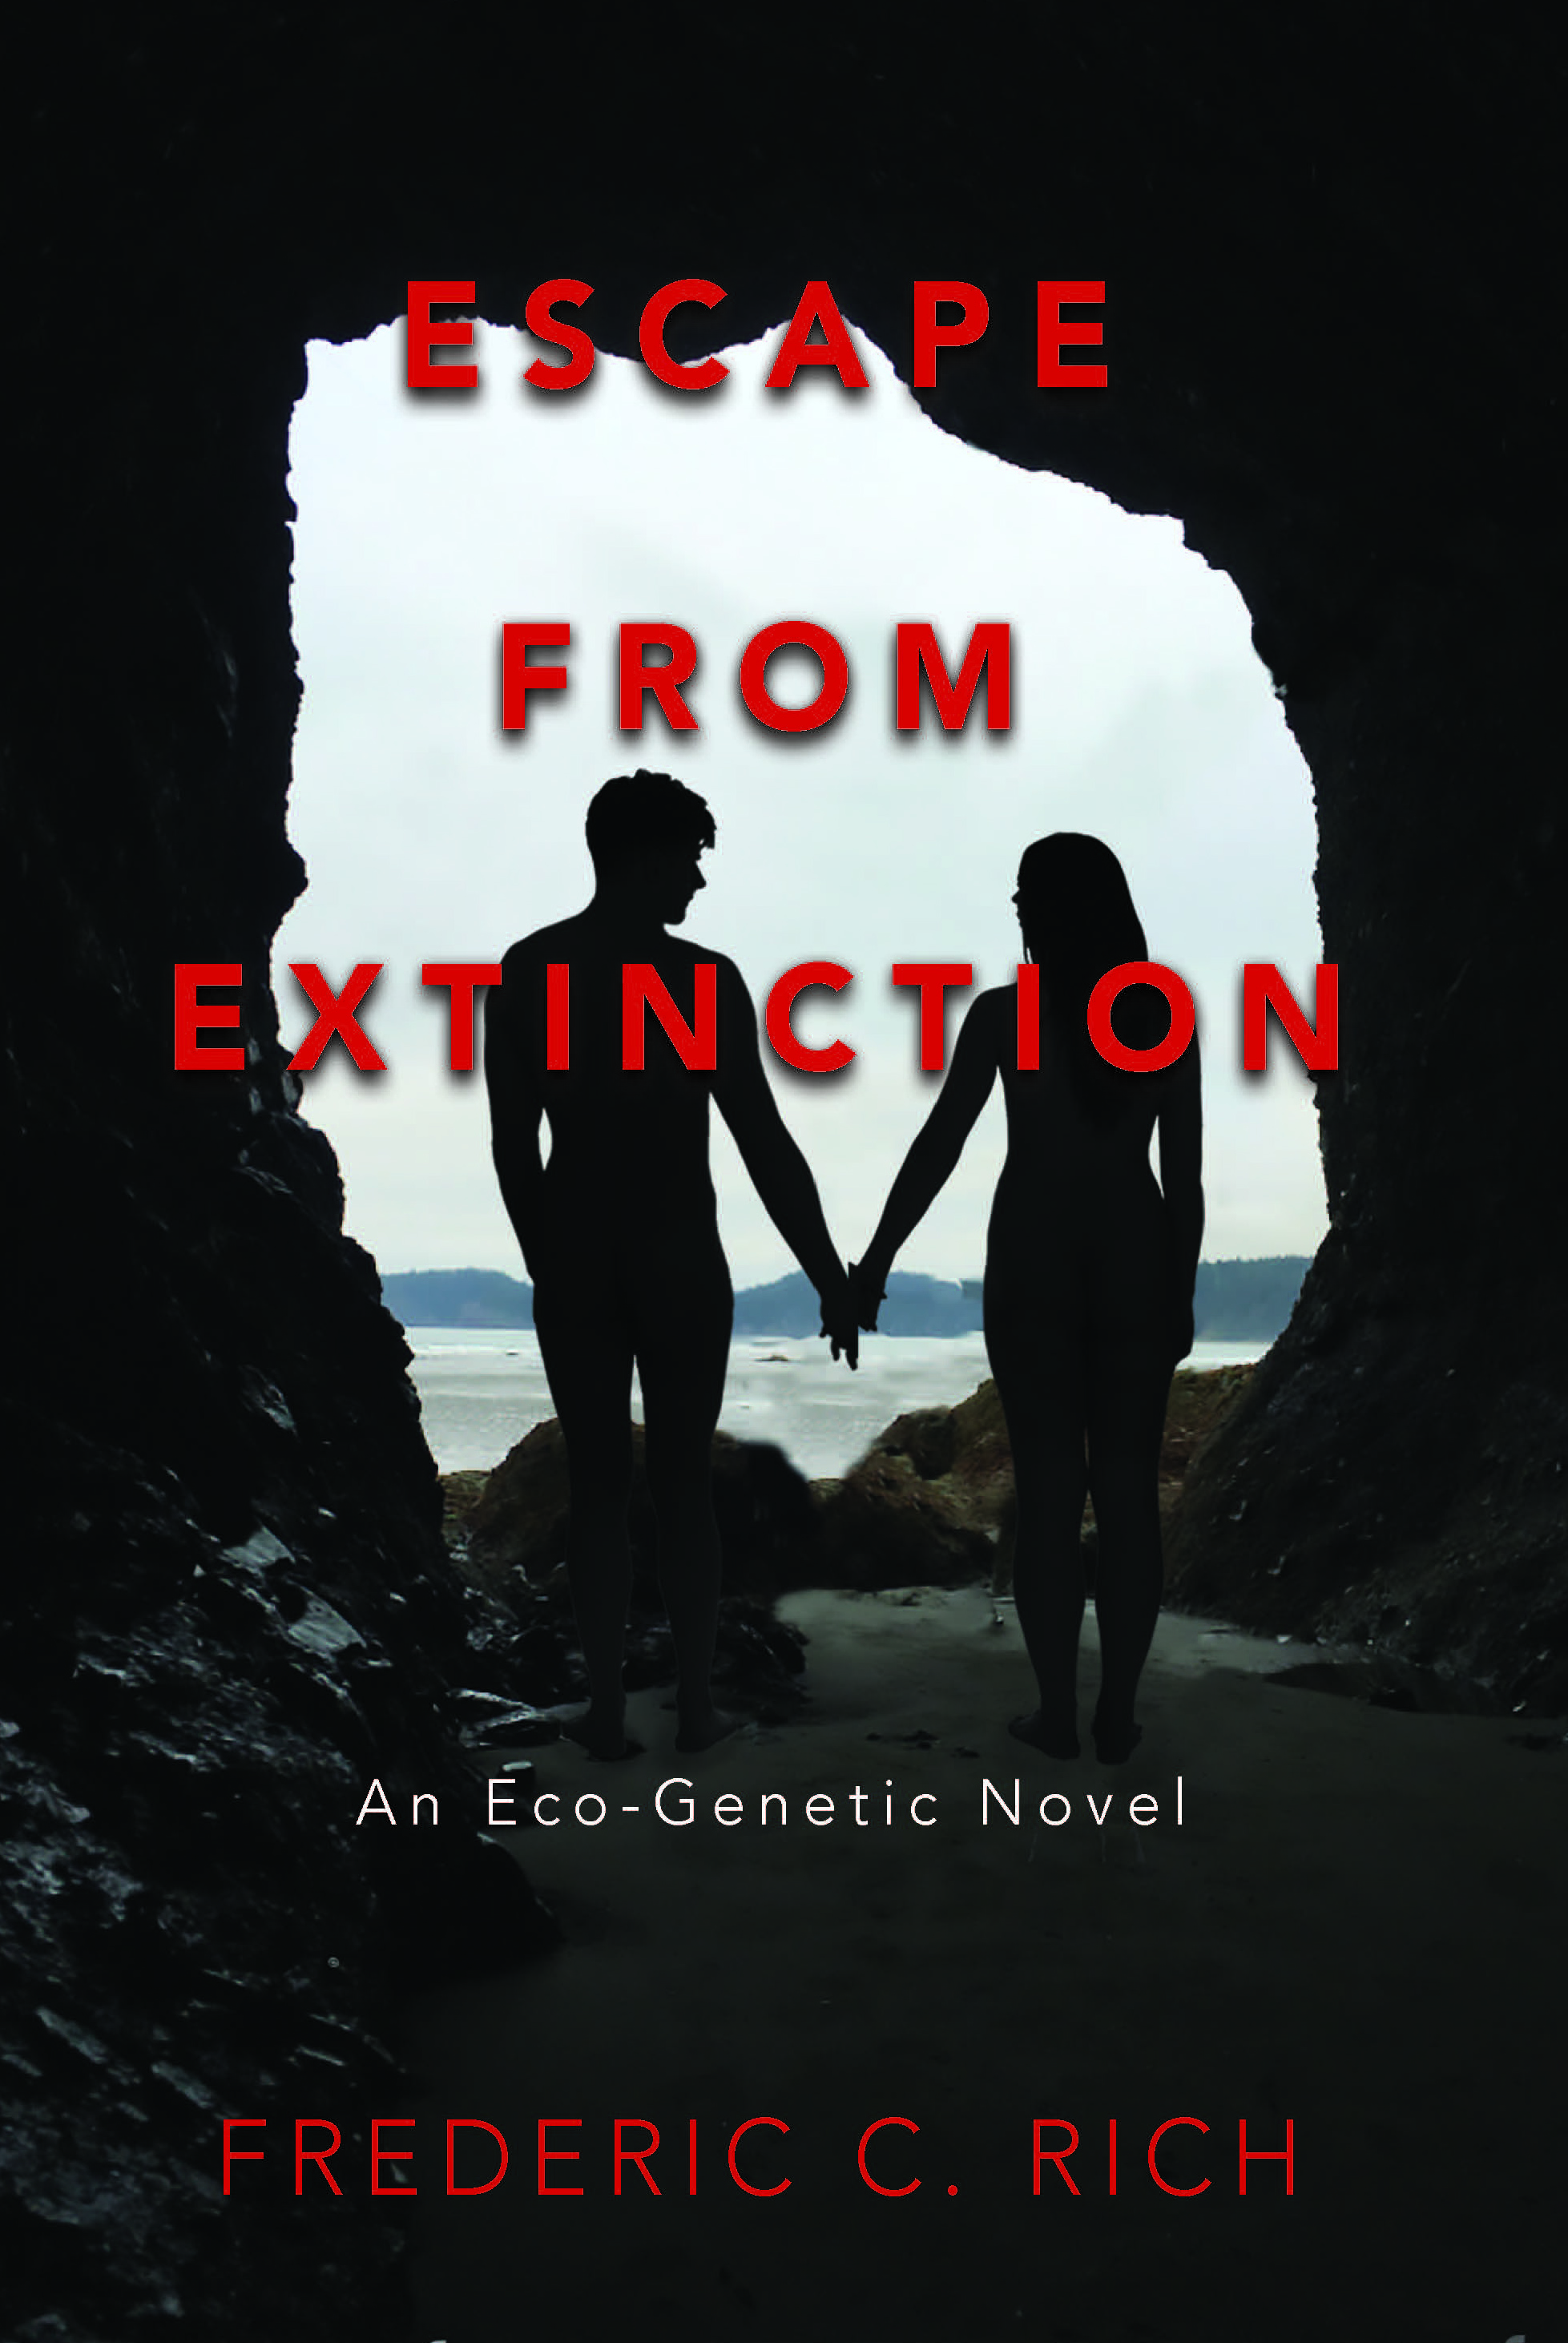 Escape from Extinction, an Eco-Genetic Novel